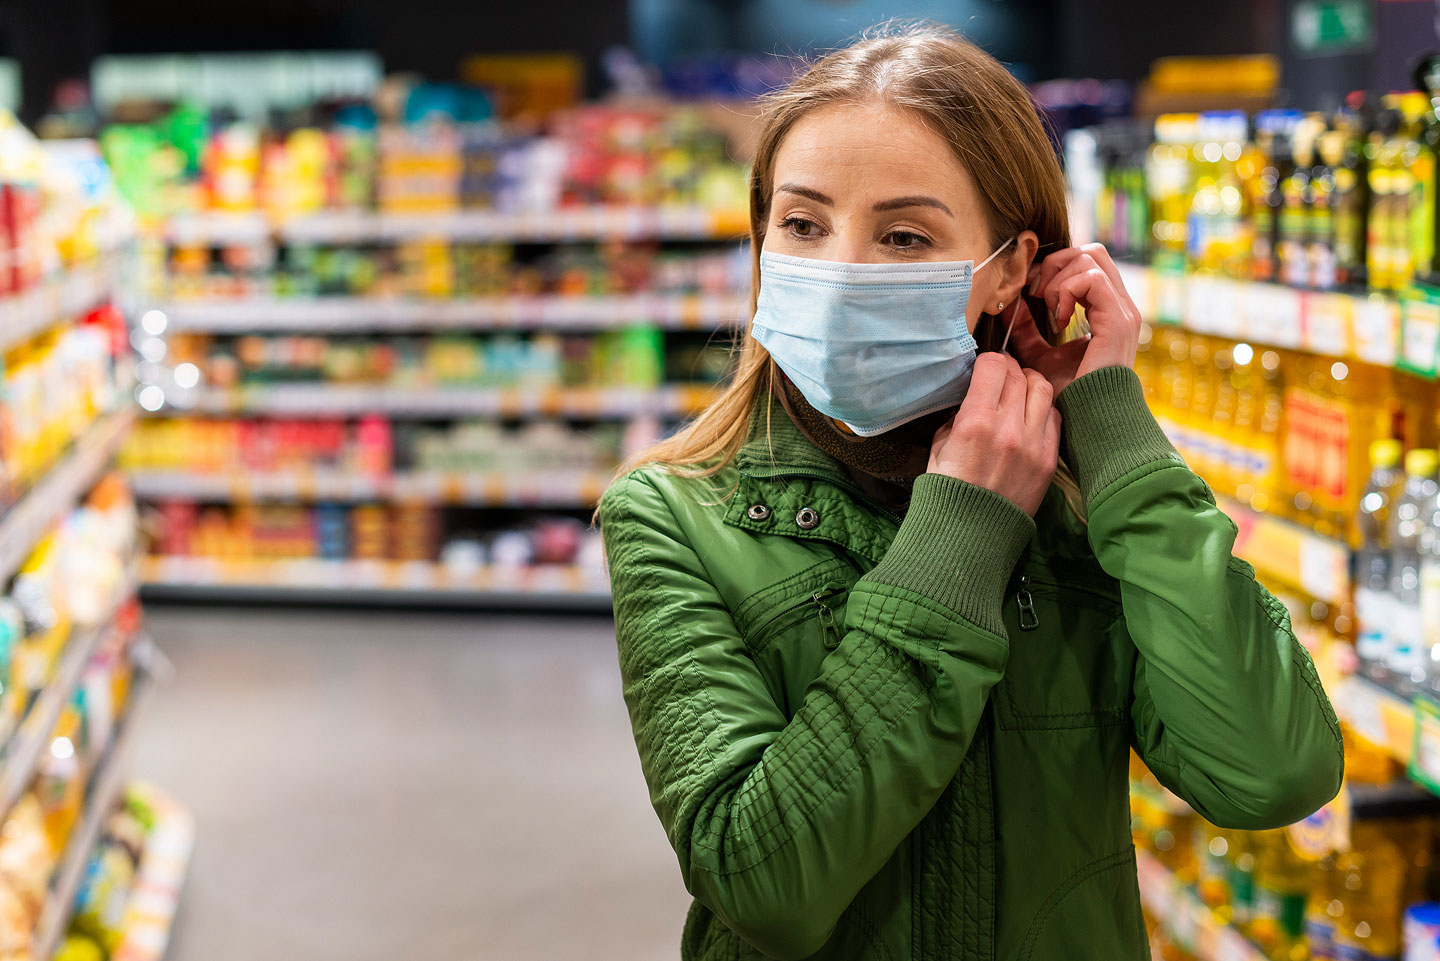 Woman wearing mask in a store